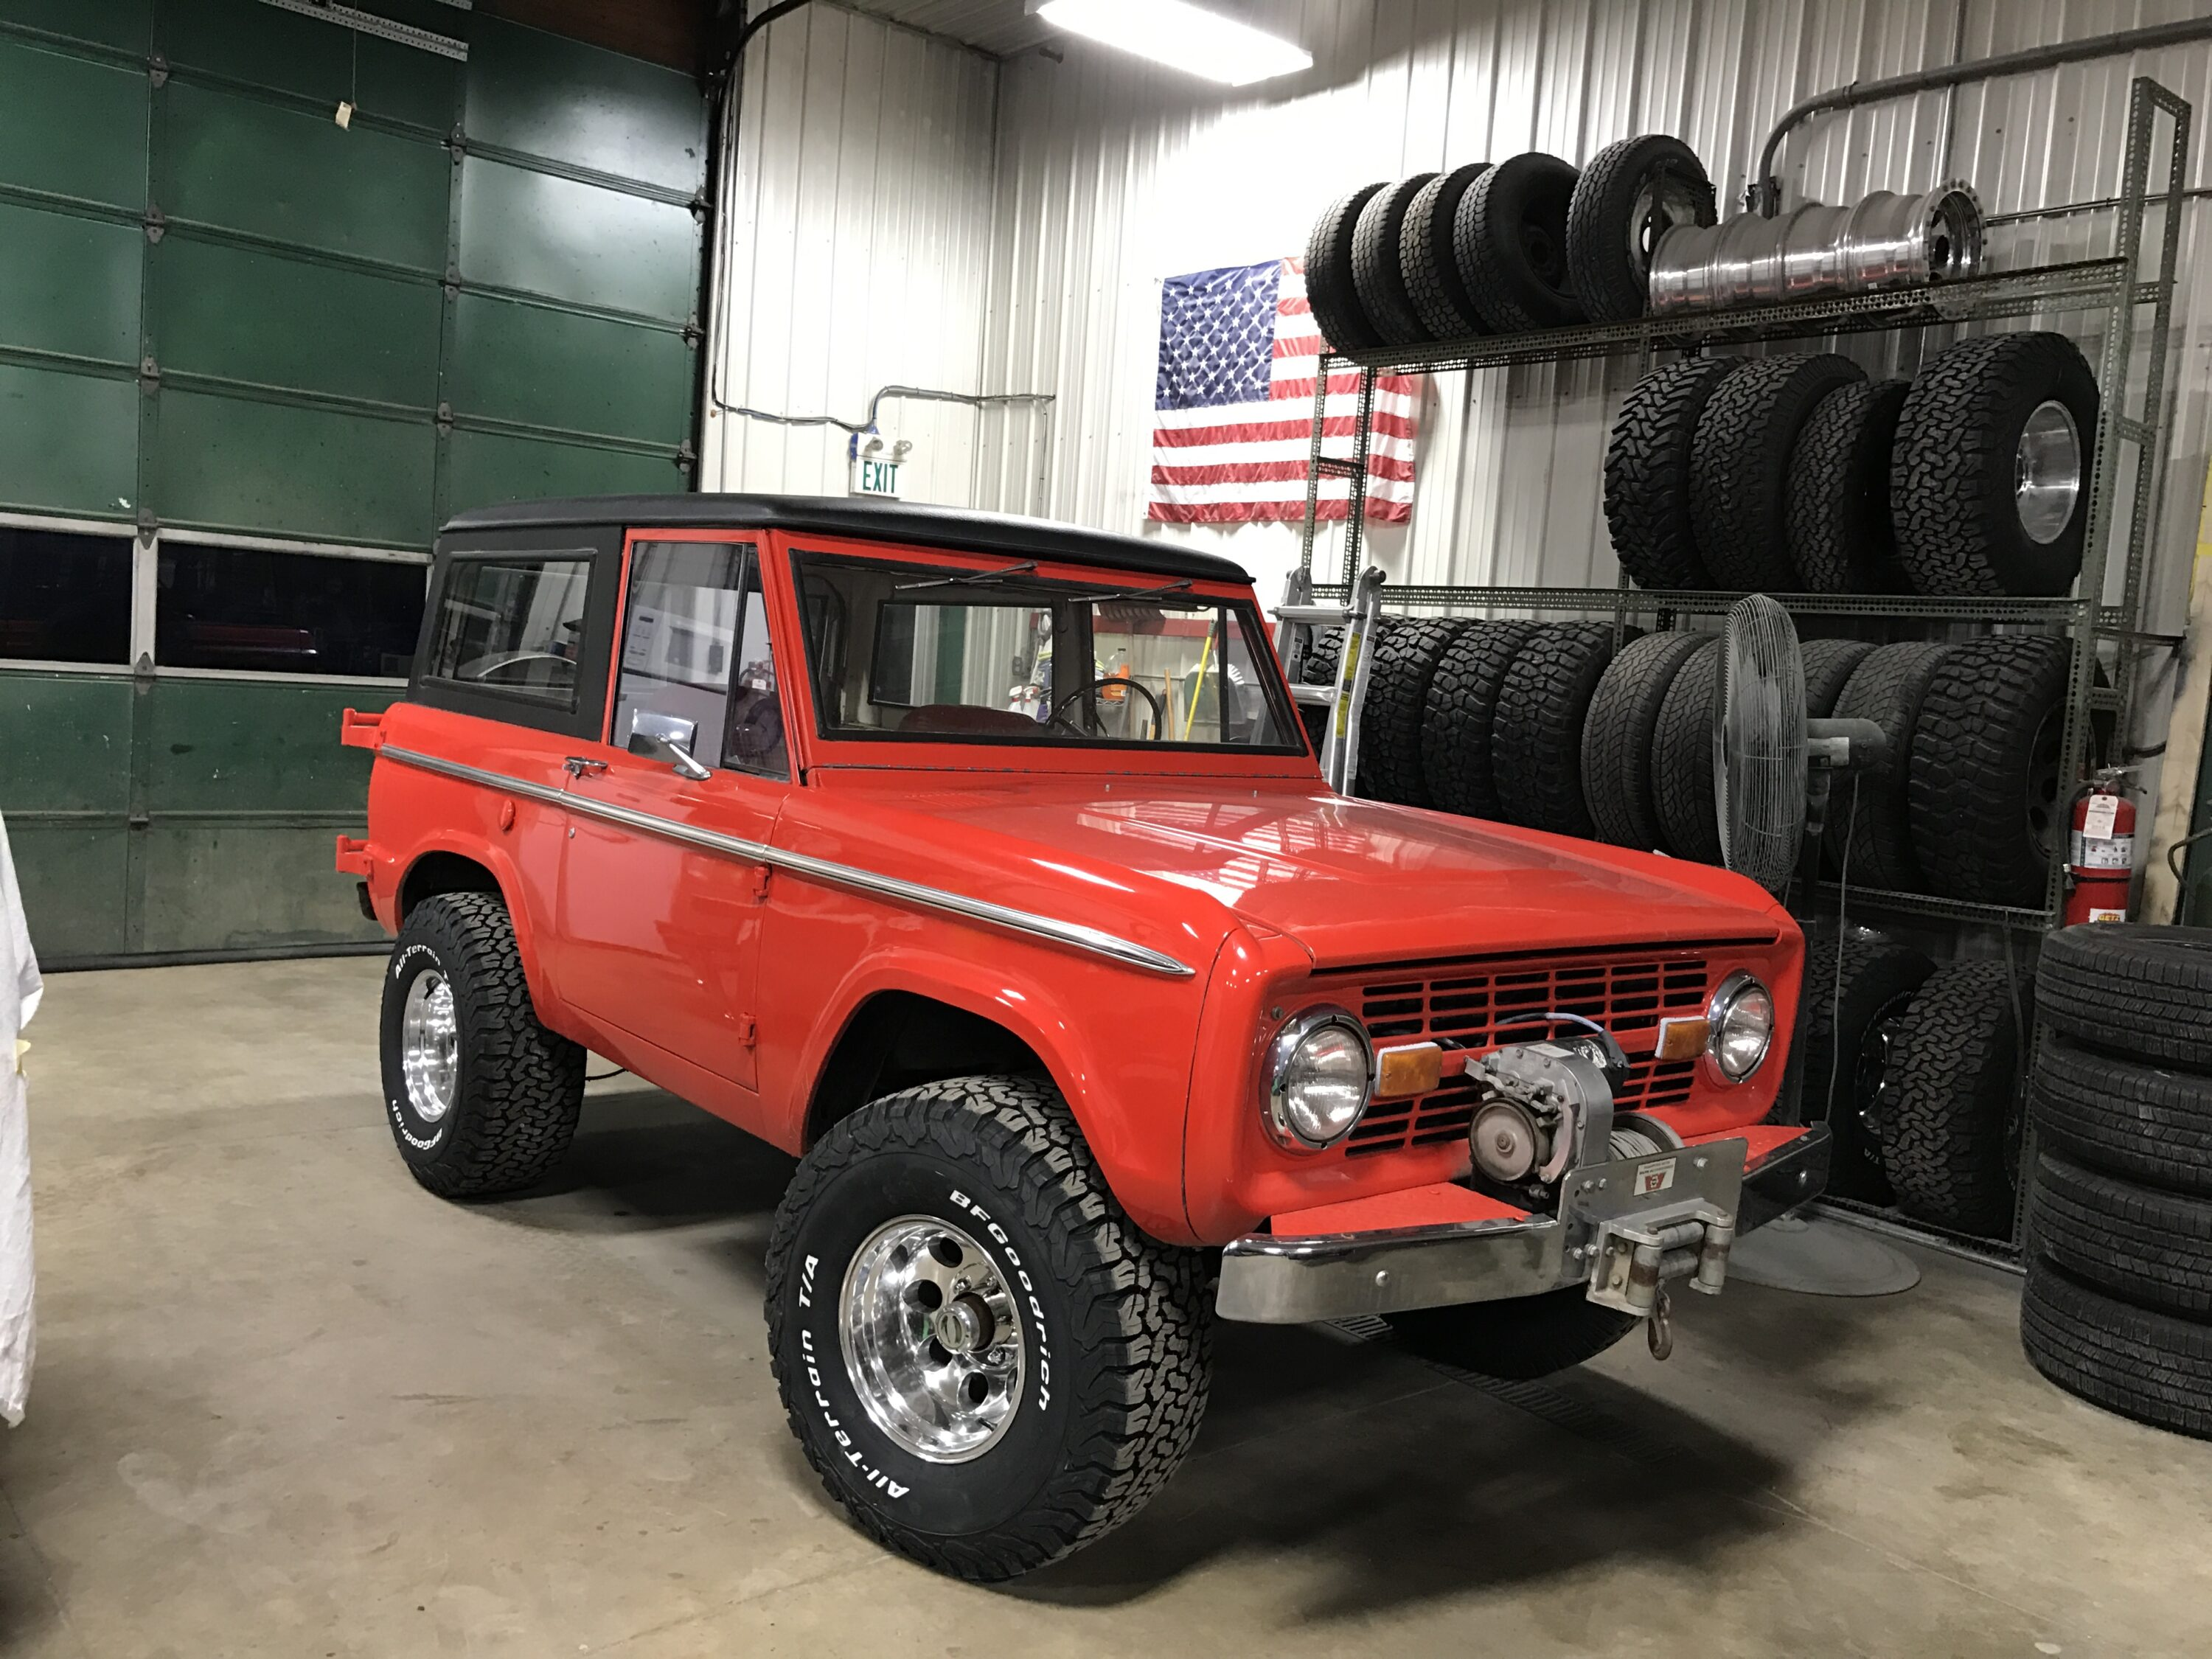 1974 Ford Bronco Explorer | Maxlider Brothers Customs